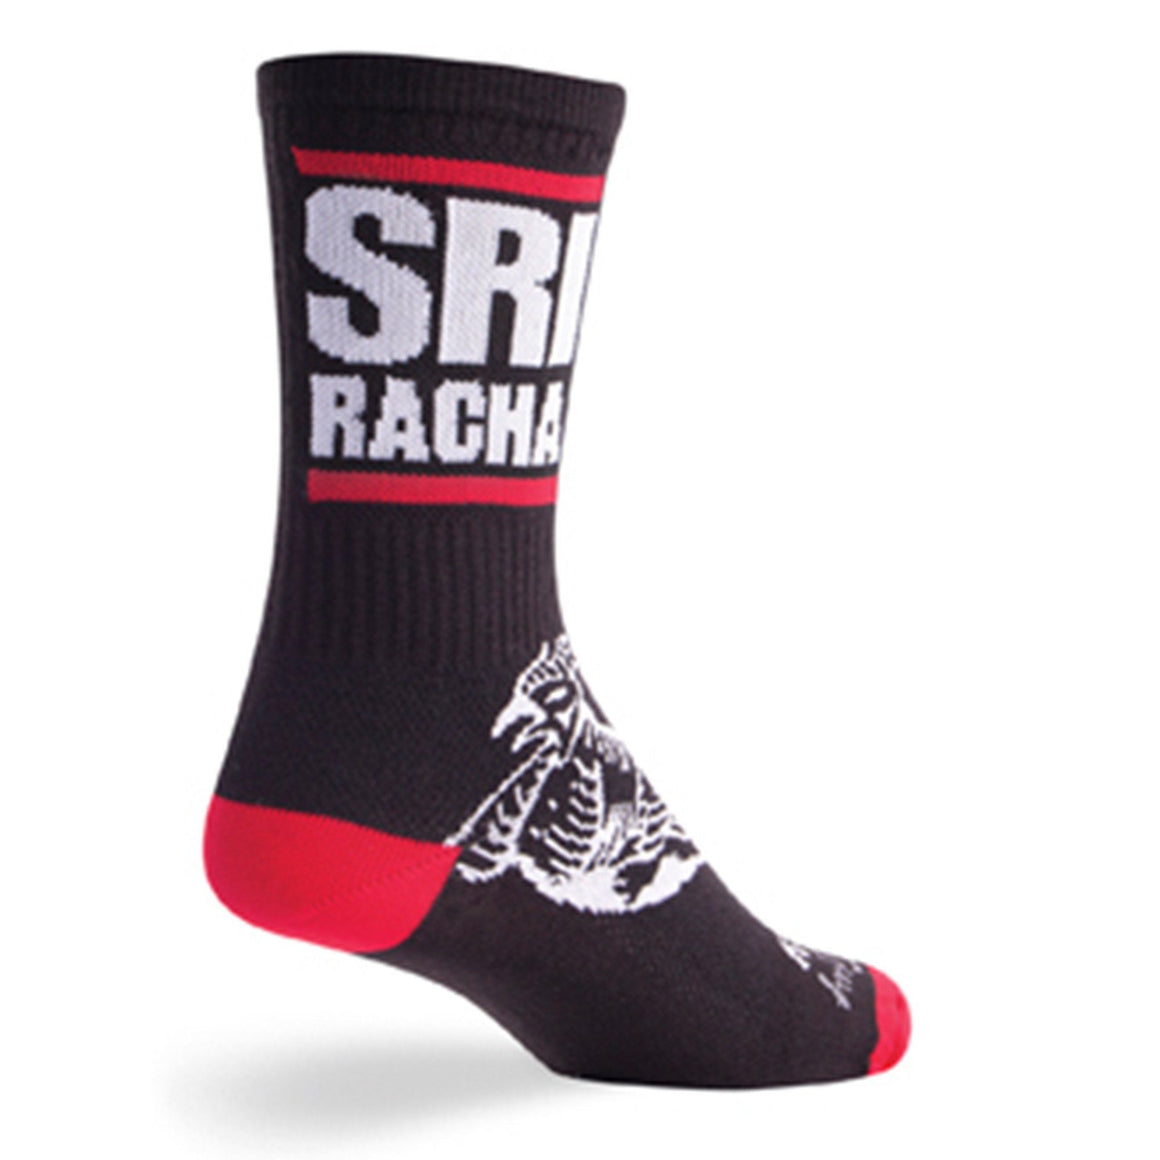 Apparel - Black Rooster Socks